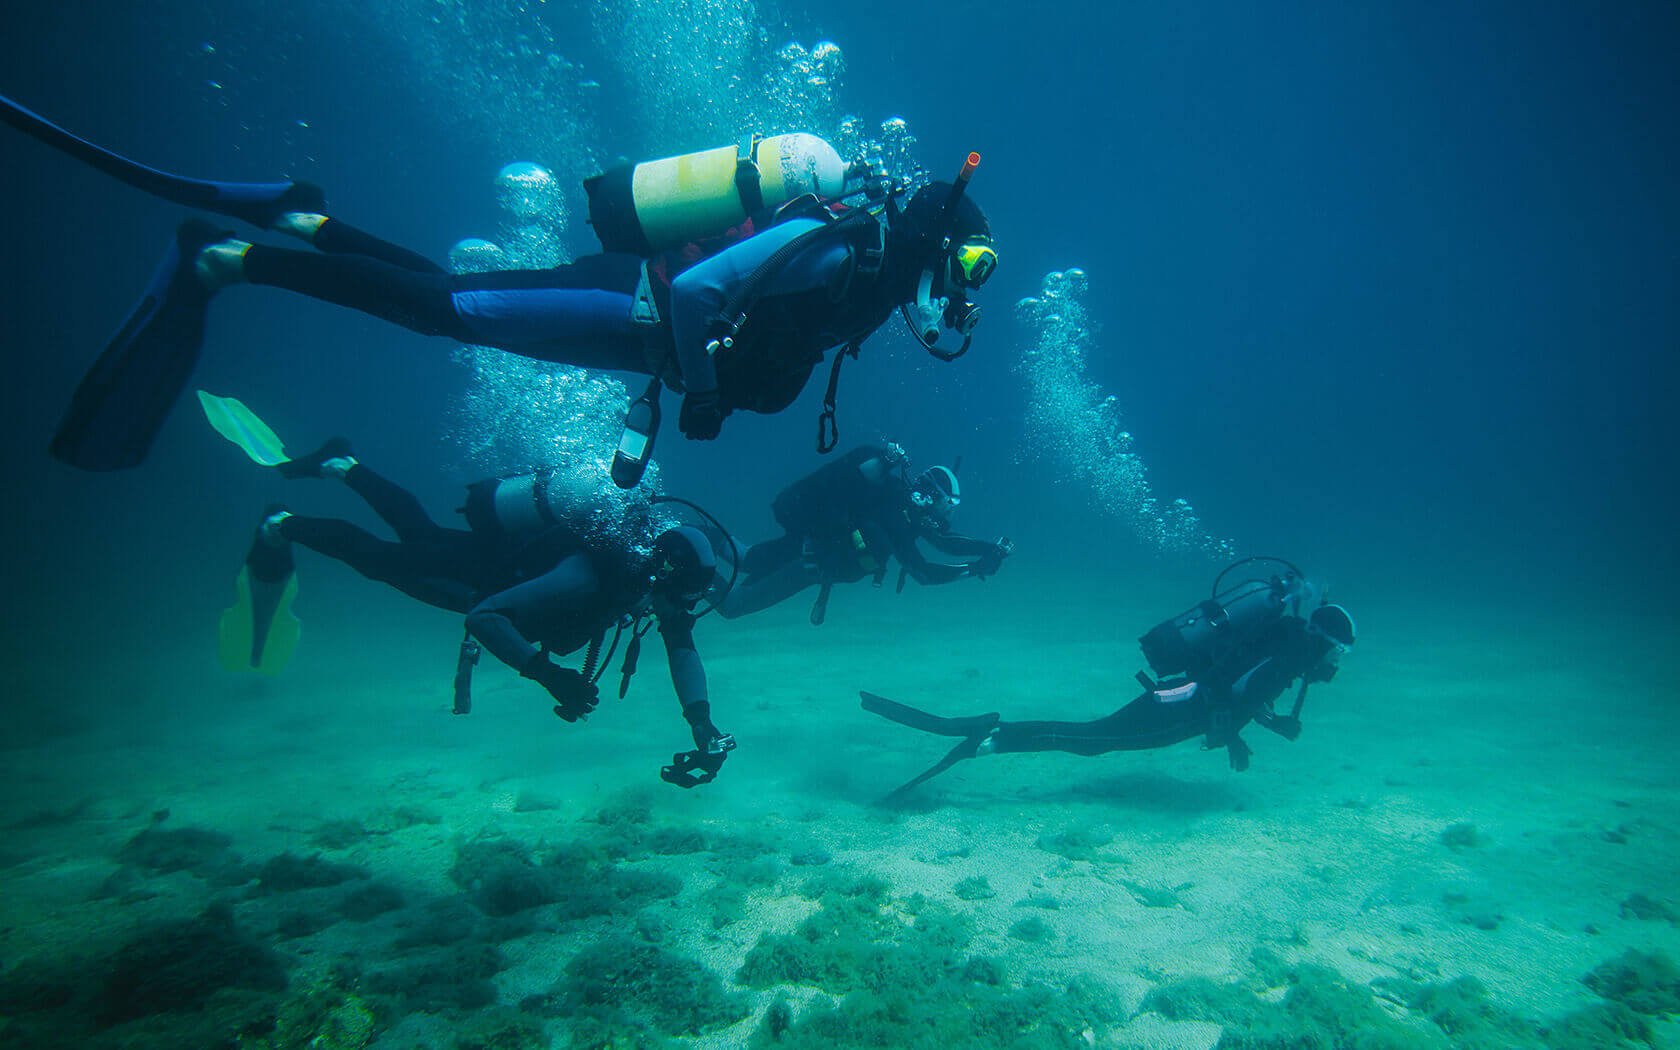 Group of people scuba diving